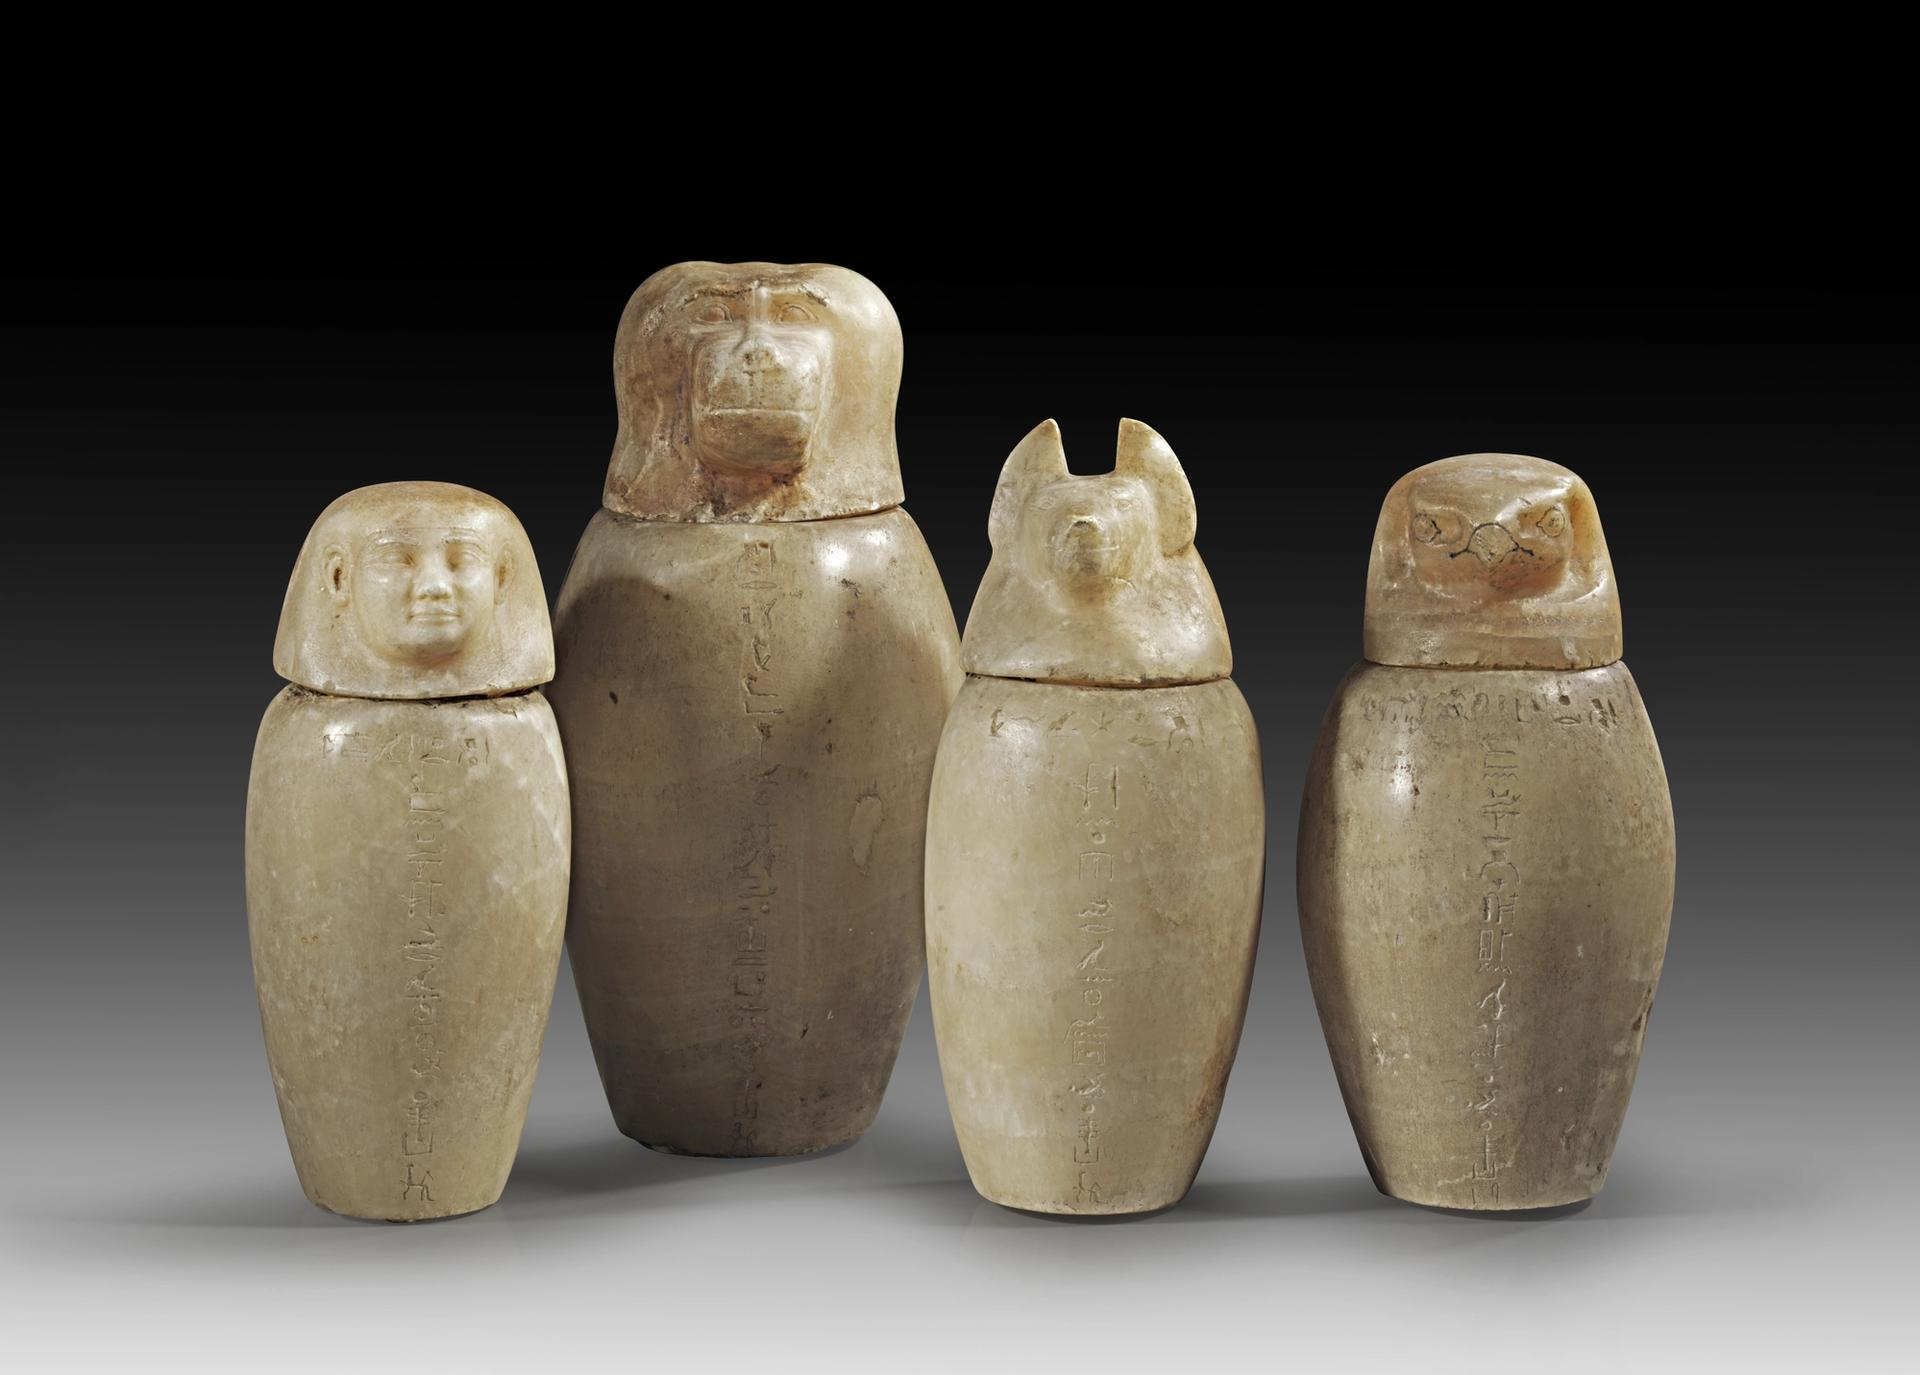 The four Egyptian alabaster jars dating from the 26th dynasty (around BC663-BC525) are on sale at Gorny and Mosch